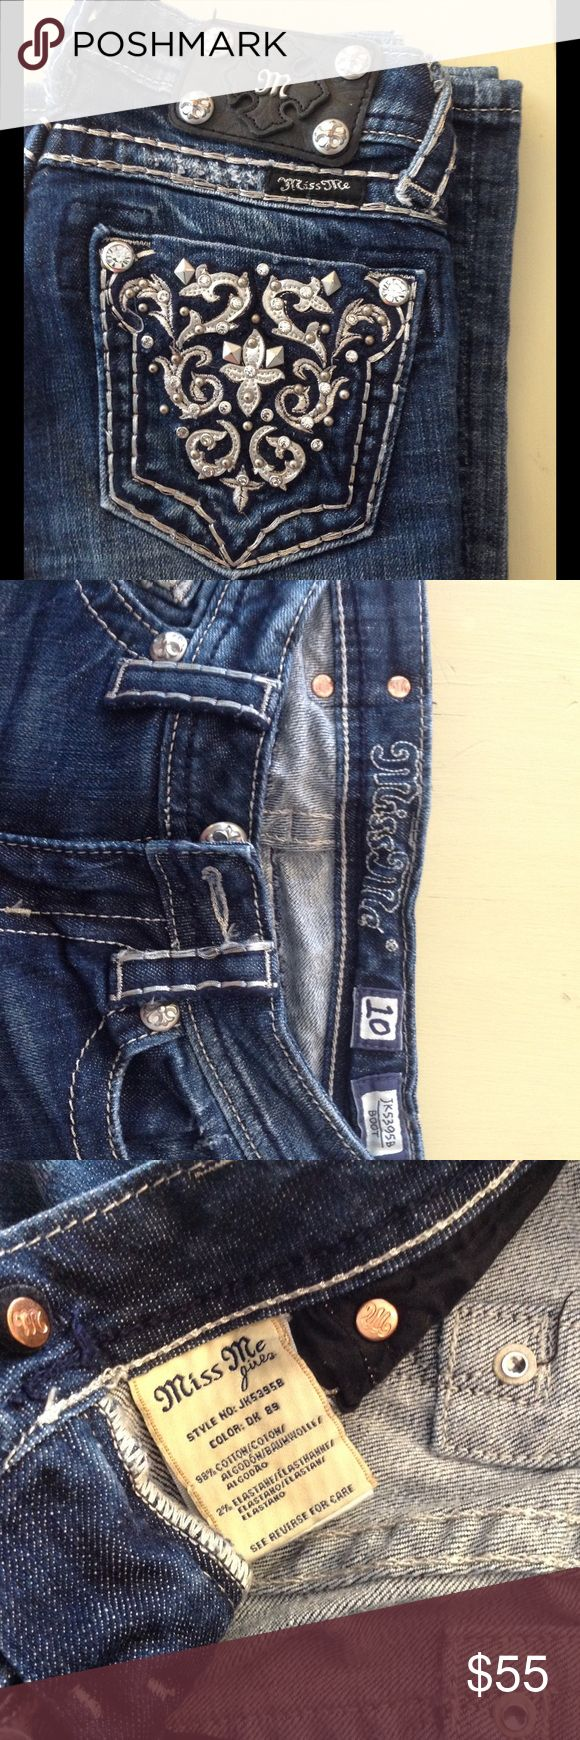 Girls Miss Me Jeans Size 10 Girls Miss Me Jeans Size 10, boot cut, style JK5395B, dark color Miss Me Bottoms Jeans